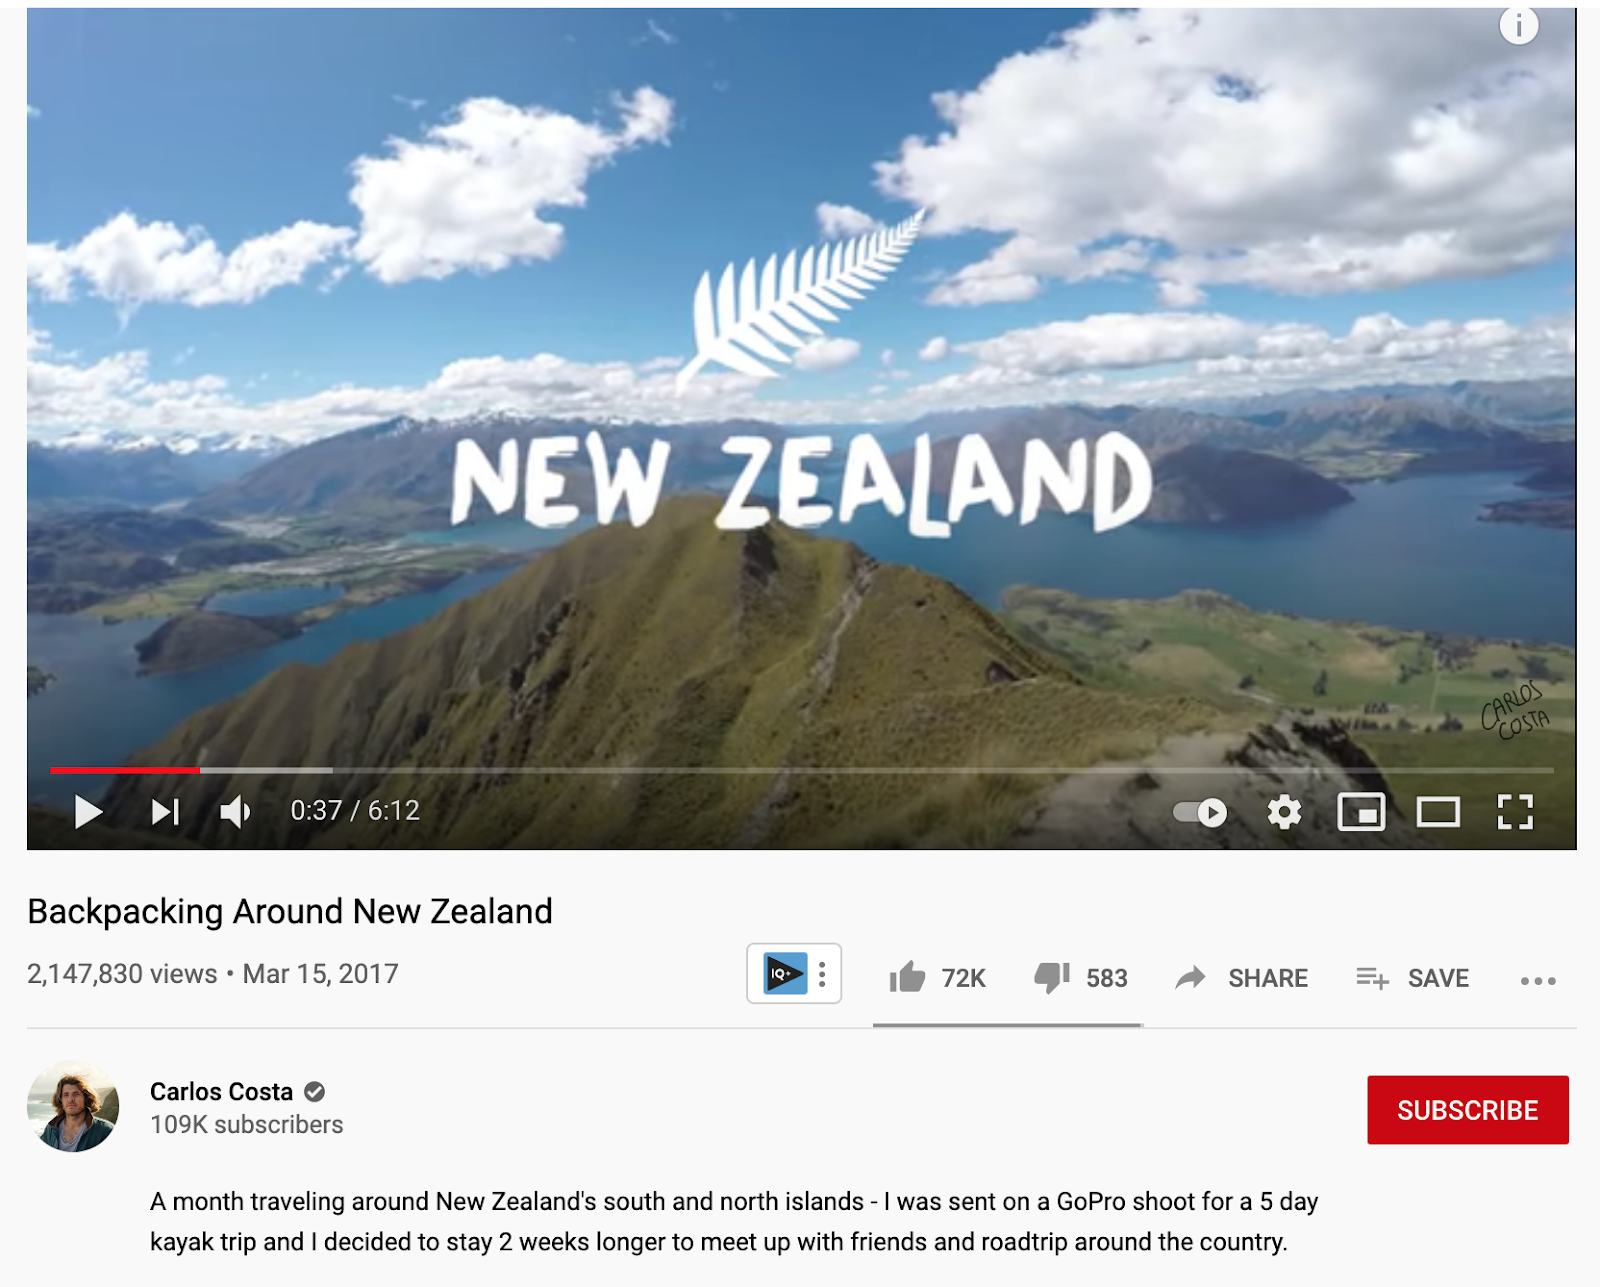 A video with over 2.1M views on backpacking around New Zealand.